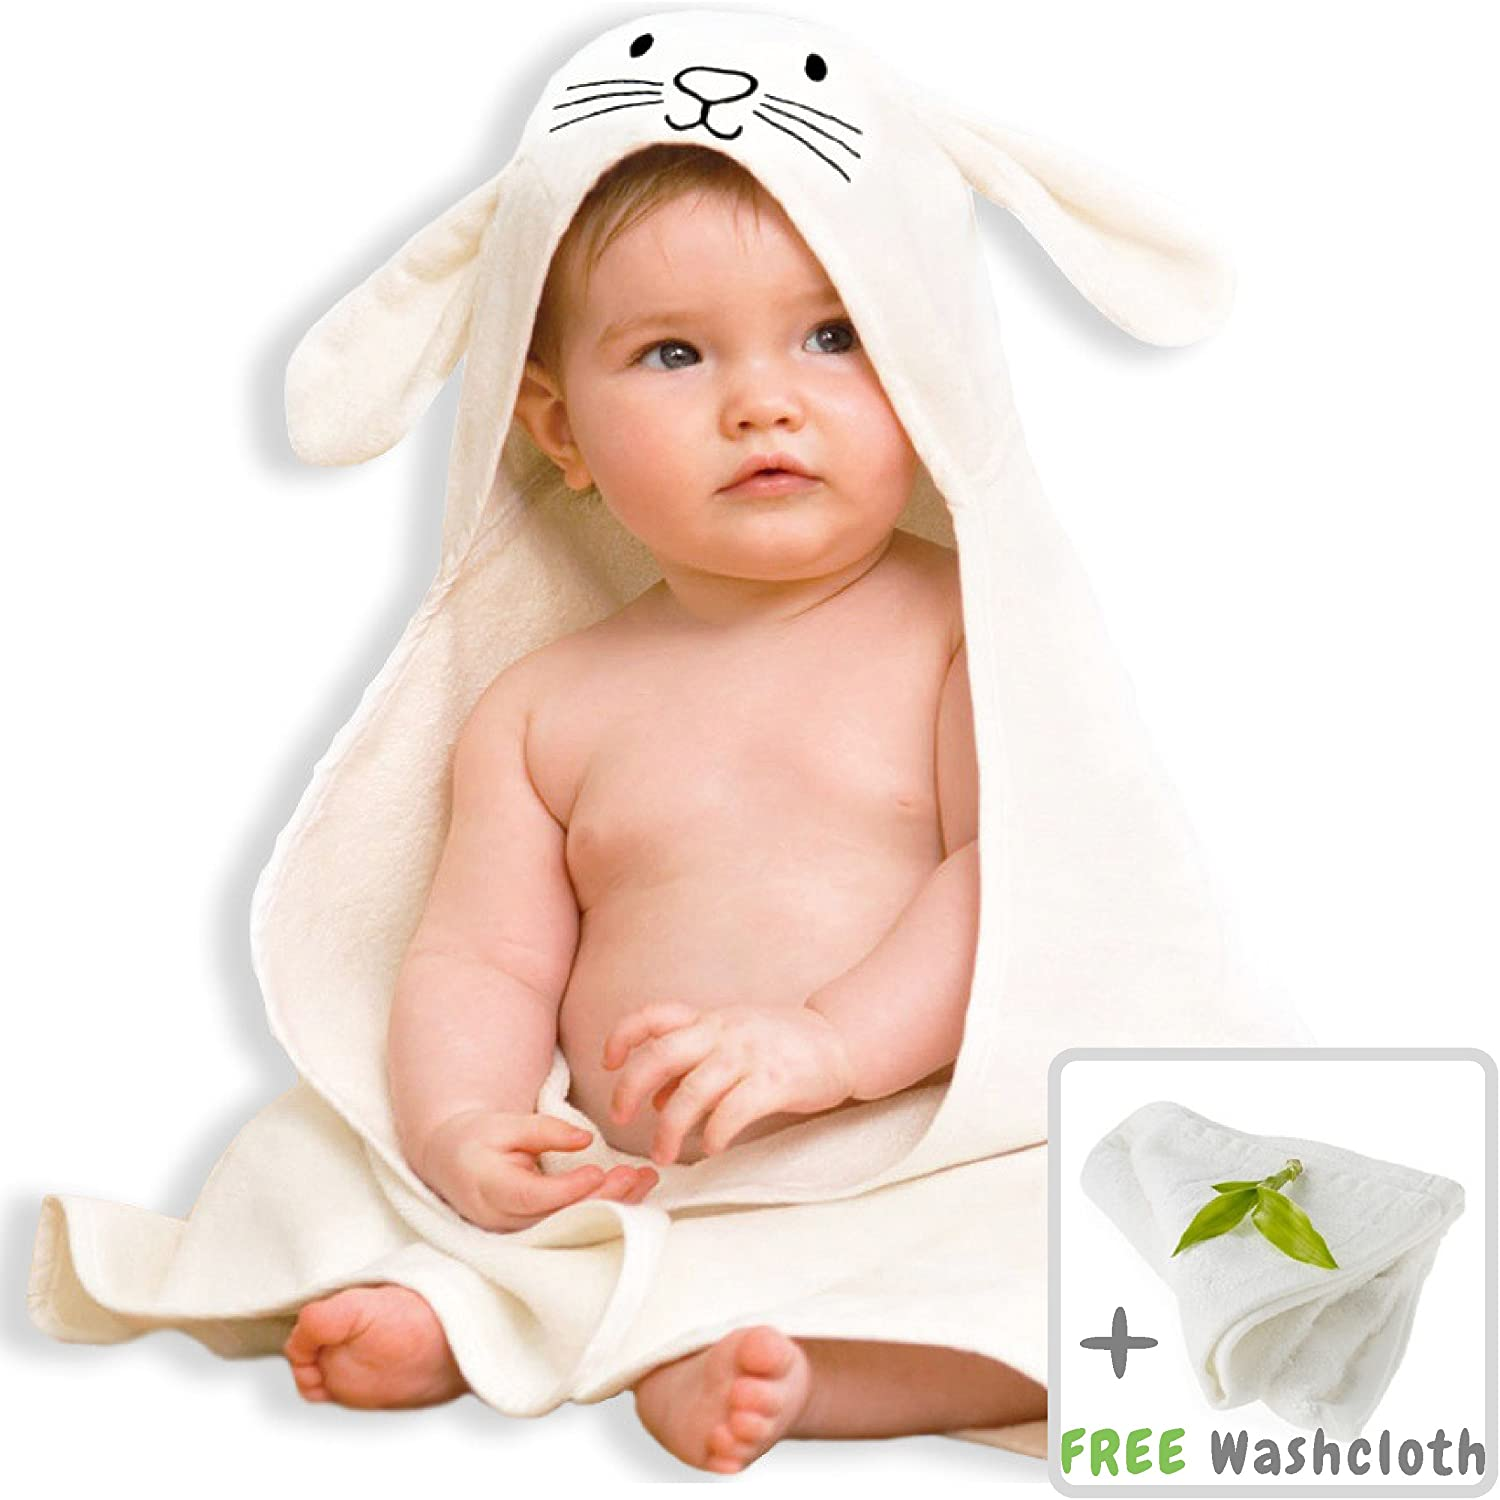 Organic Bamboo Baby Hooded Towel with Bonus Washcloth | Ultra Soft and Super Absorbent Toddler Hooded Bath Towel with Cute Bunny Face Design | Great Infant/Newborn Shower Present for Boy or Girl Lucylla